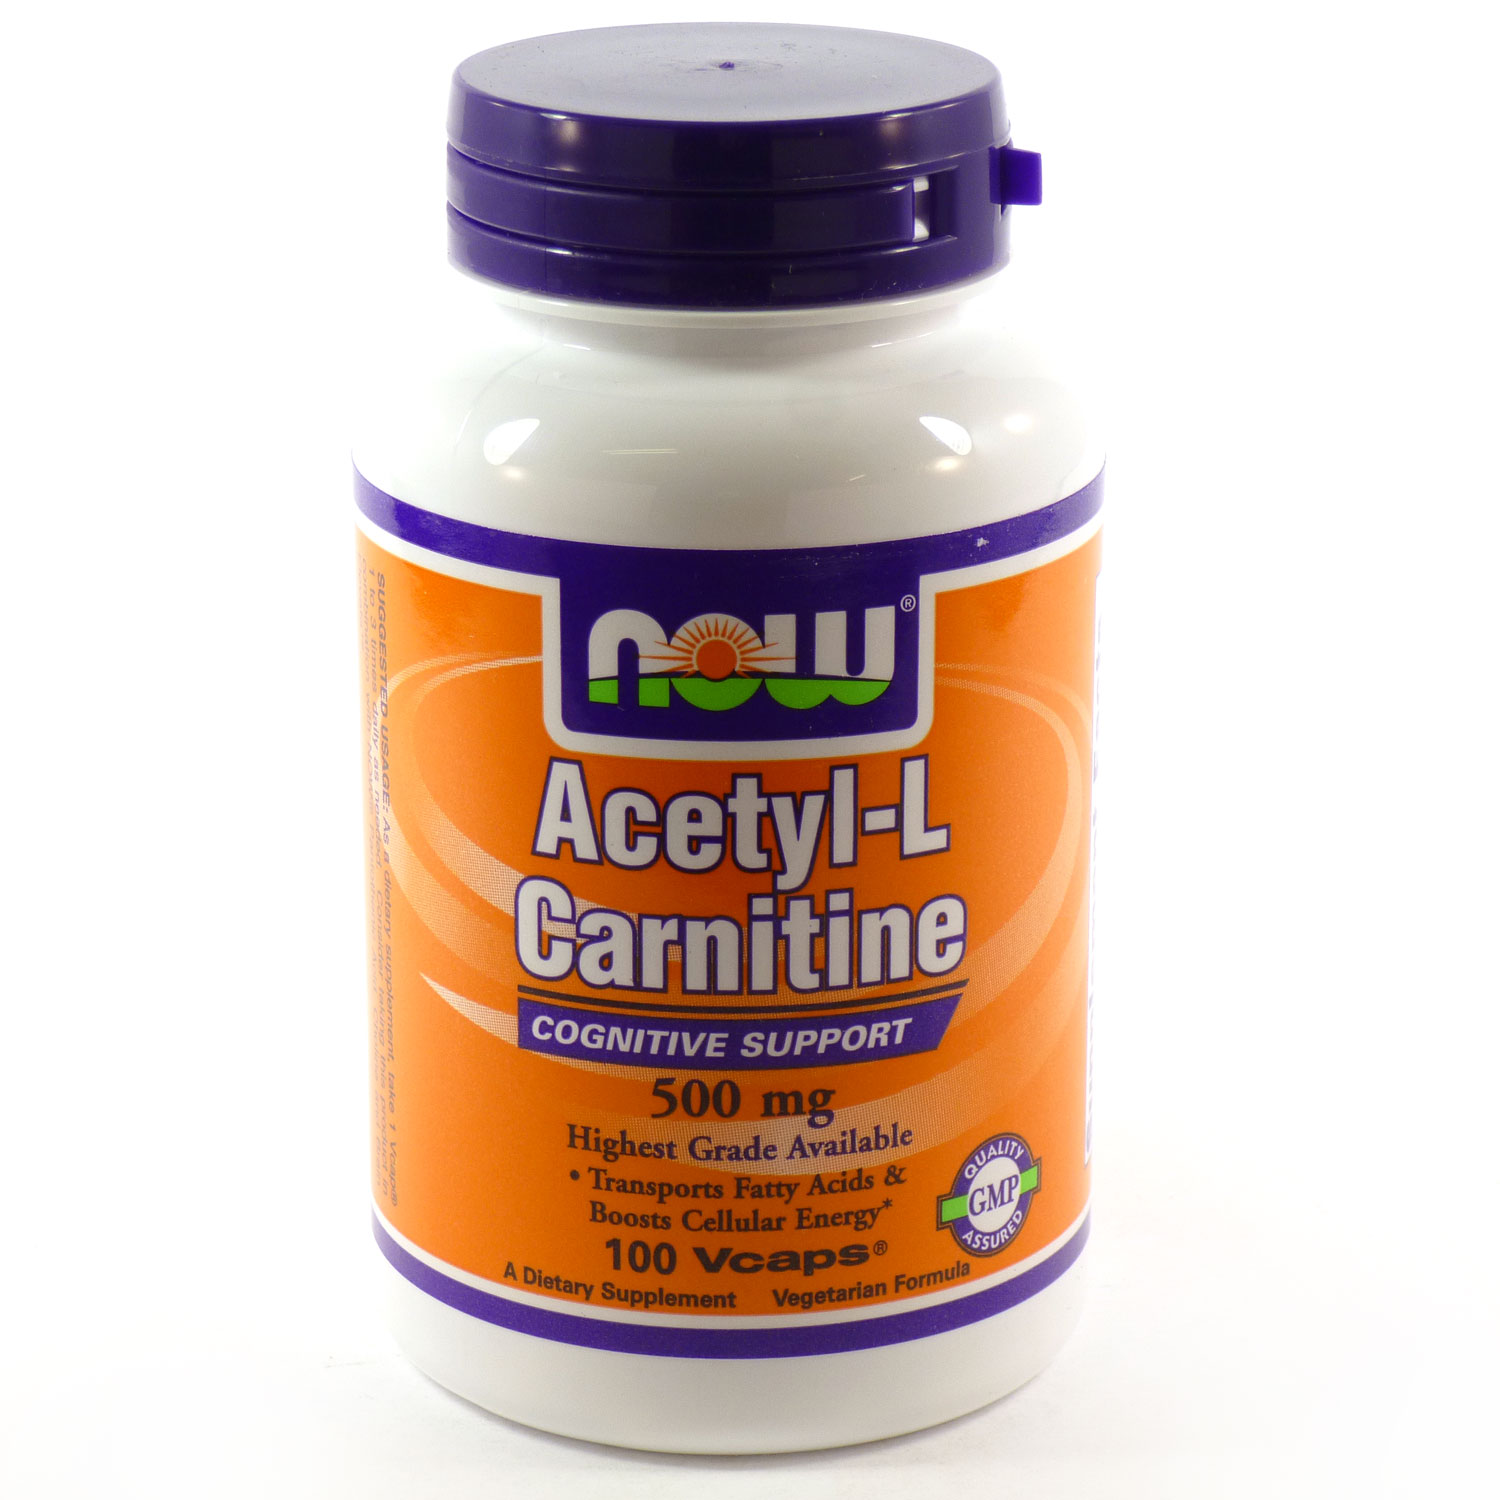 Now Acetyl-L Carnitine